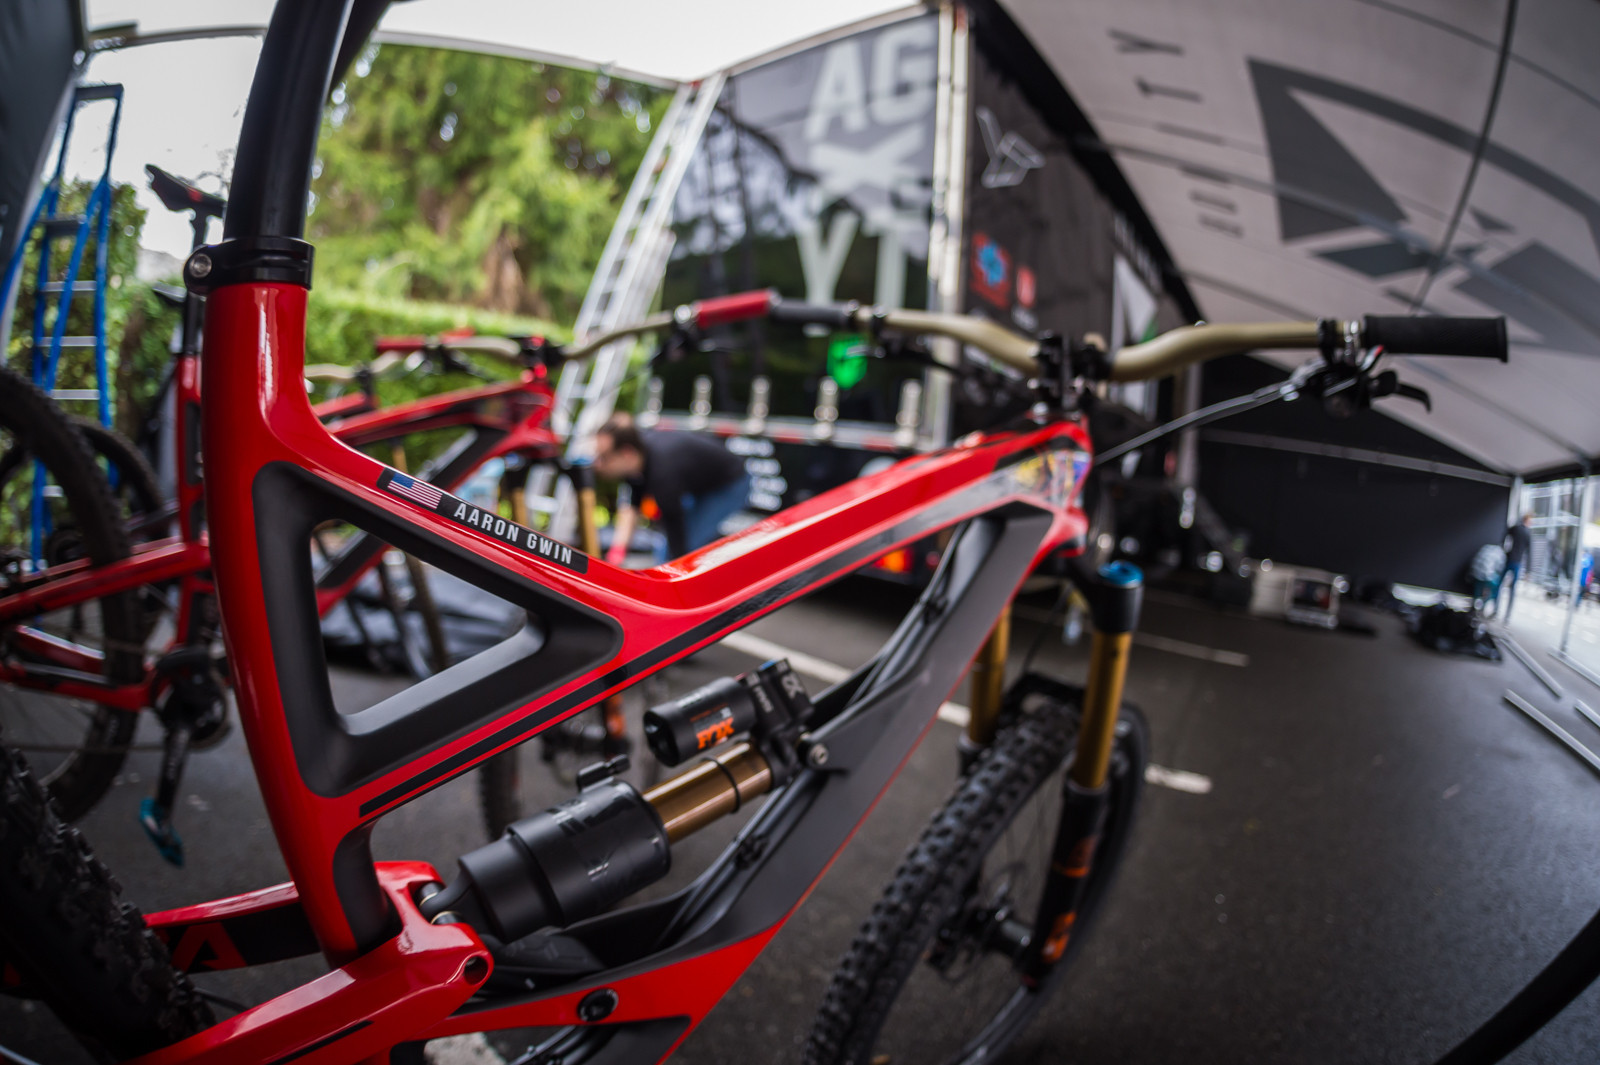 Aaron Gwin's YT Capra - PIT BITS - 2016 Lourdes World Cup Downhill - Mountain Biking Pictures - Vital MTB